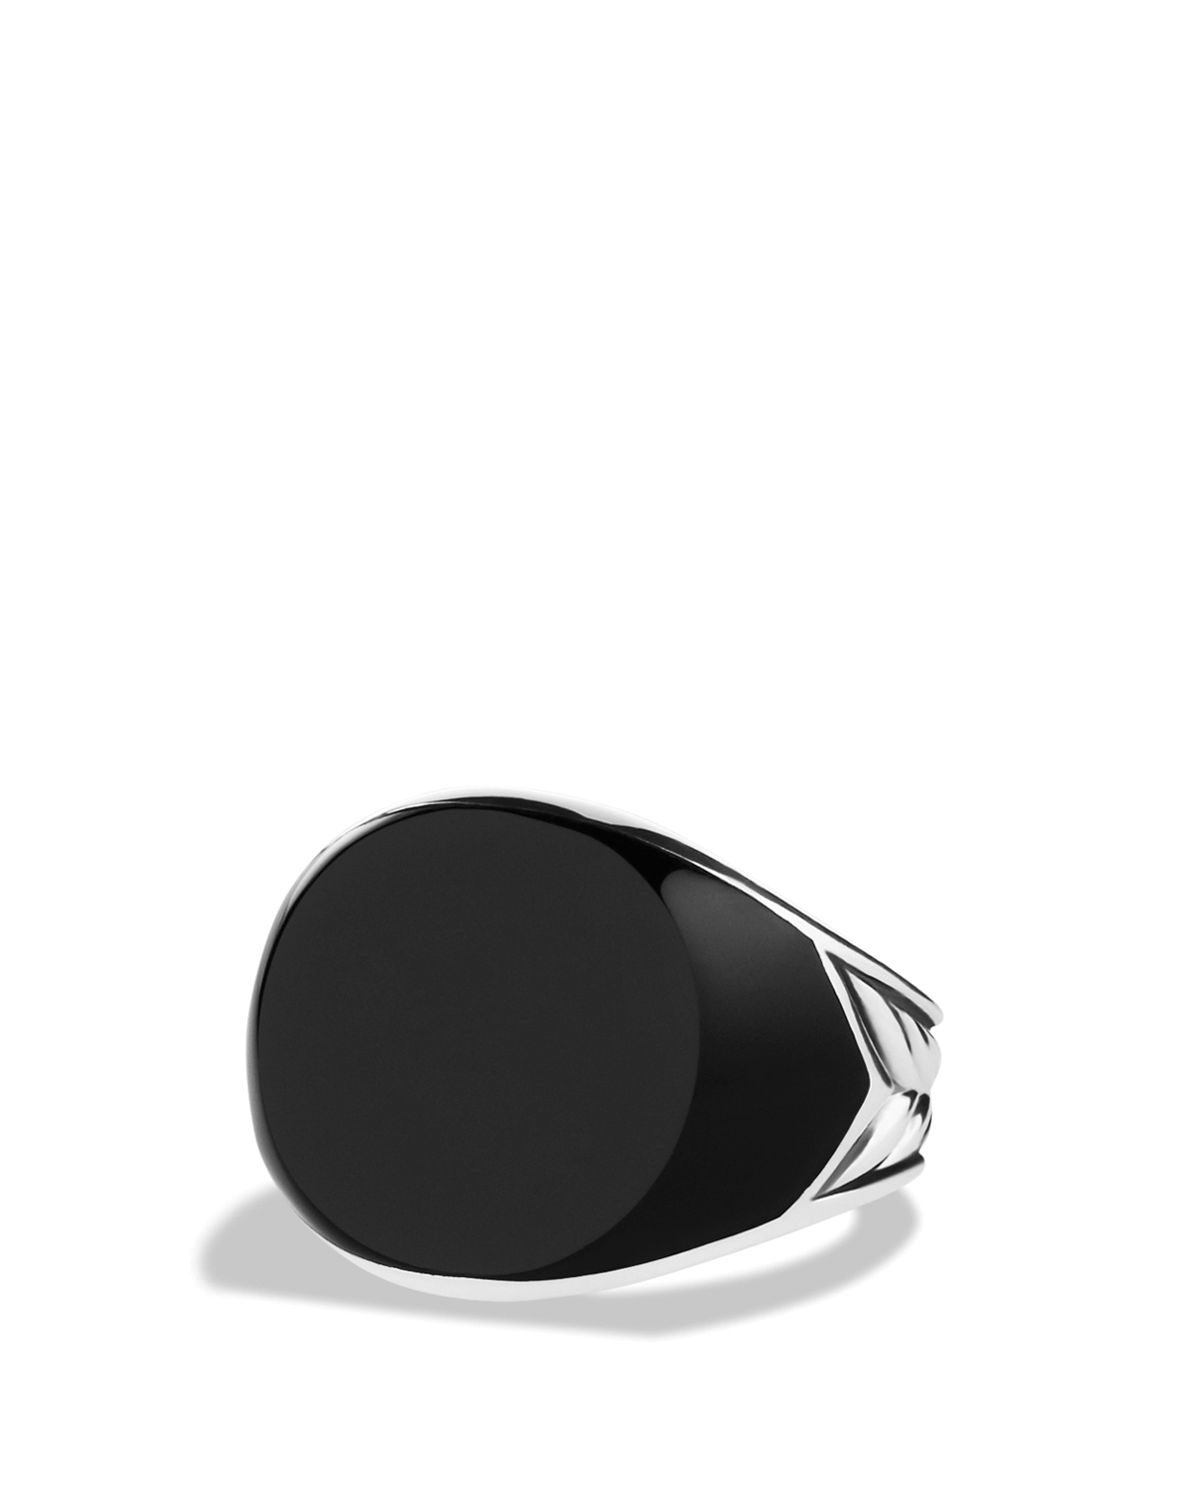 Lyst – David Yurman Chevron Round Signet Ring With Black Onyx In With Regard To Current Chevron Signet Rings (View 7 of 15)